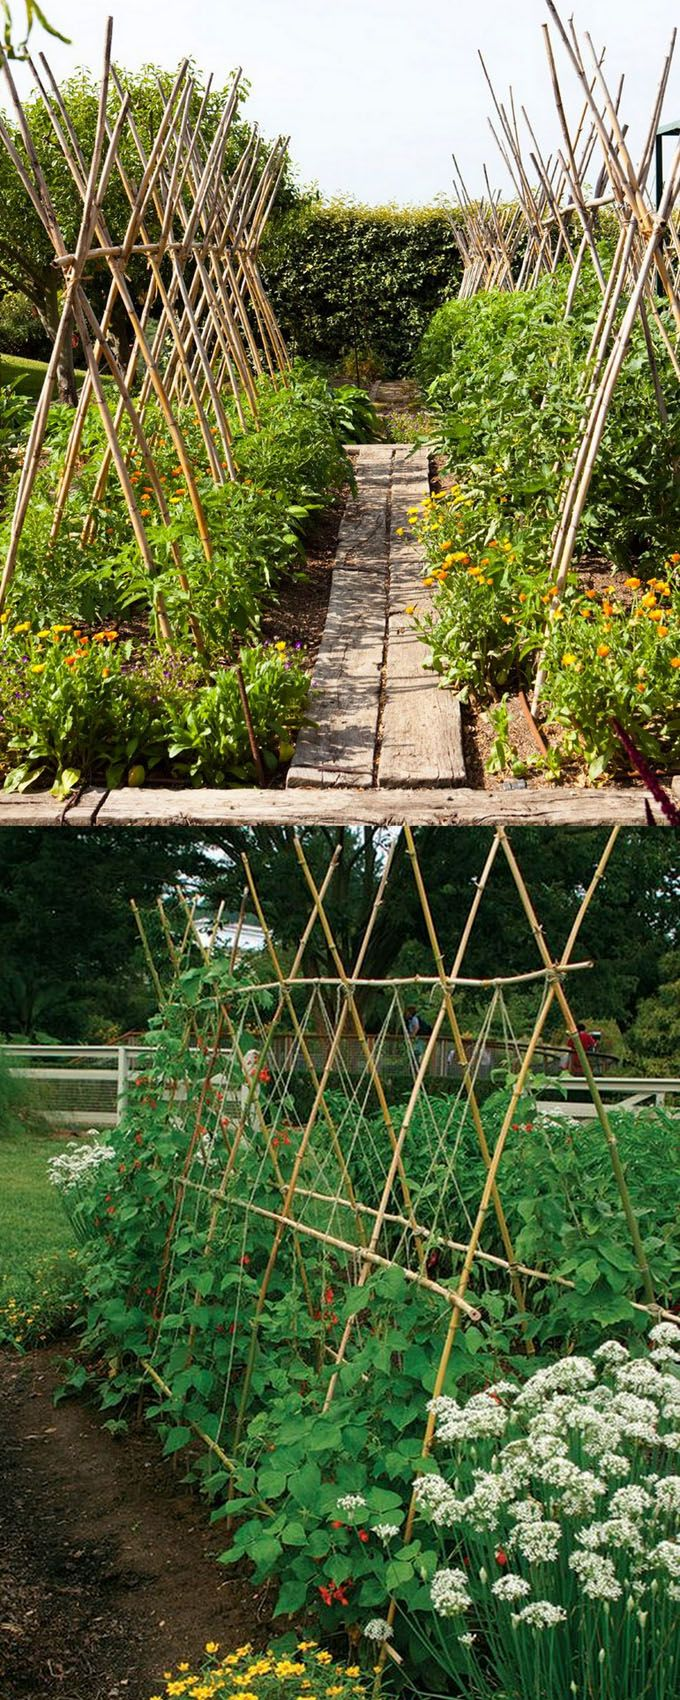 Diy plant supports - 21 Easy Diy Trellis Vertical Garden Structures